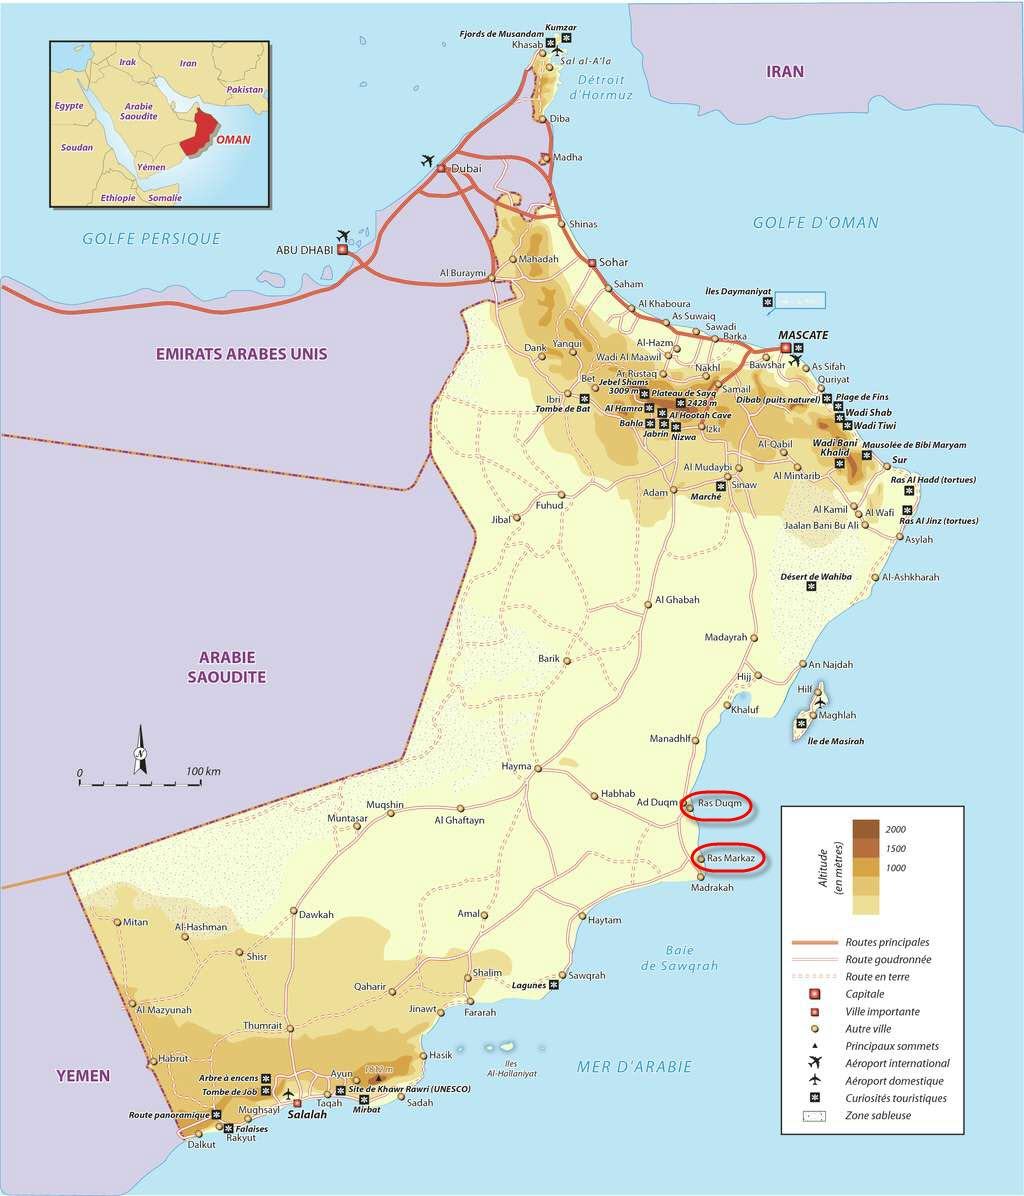 Oman-Oil_Duqm_Refinery_and_Petrochemical_Map